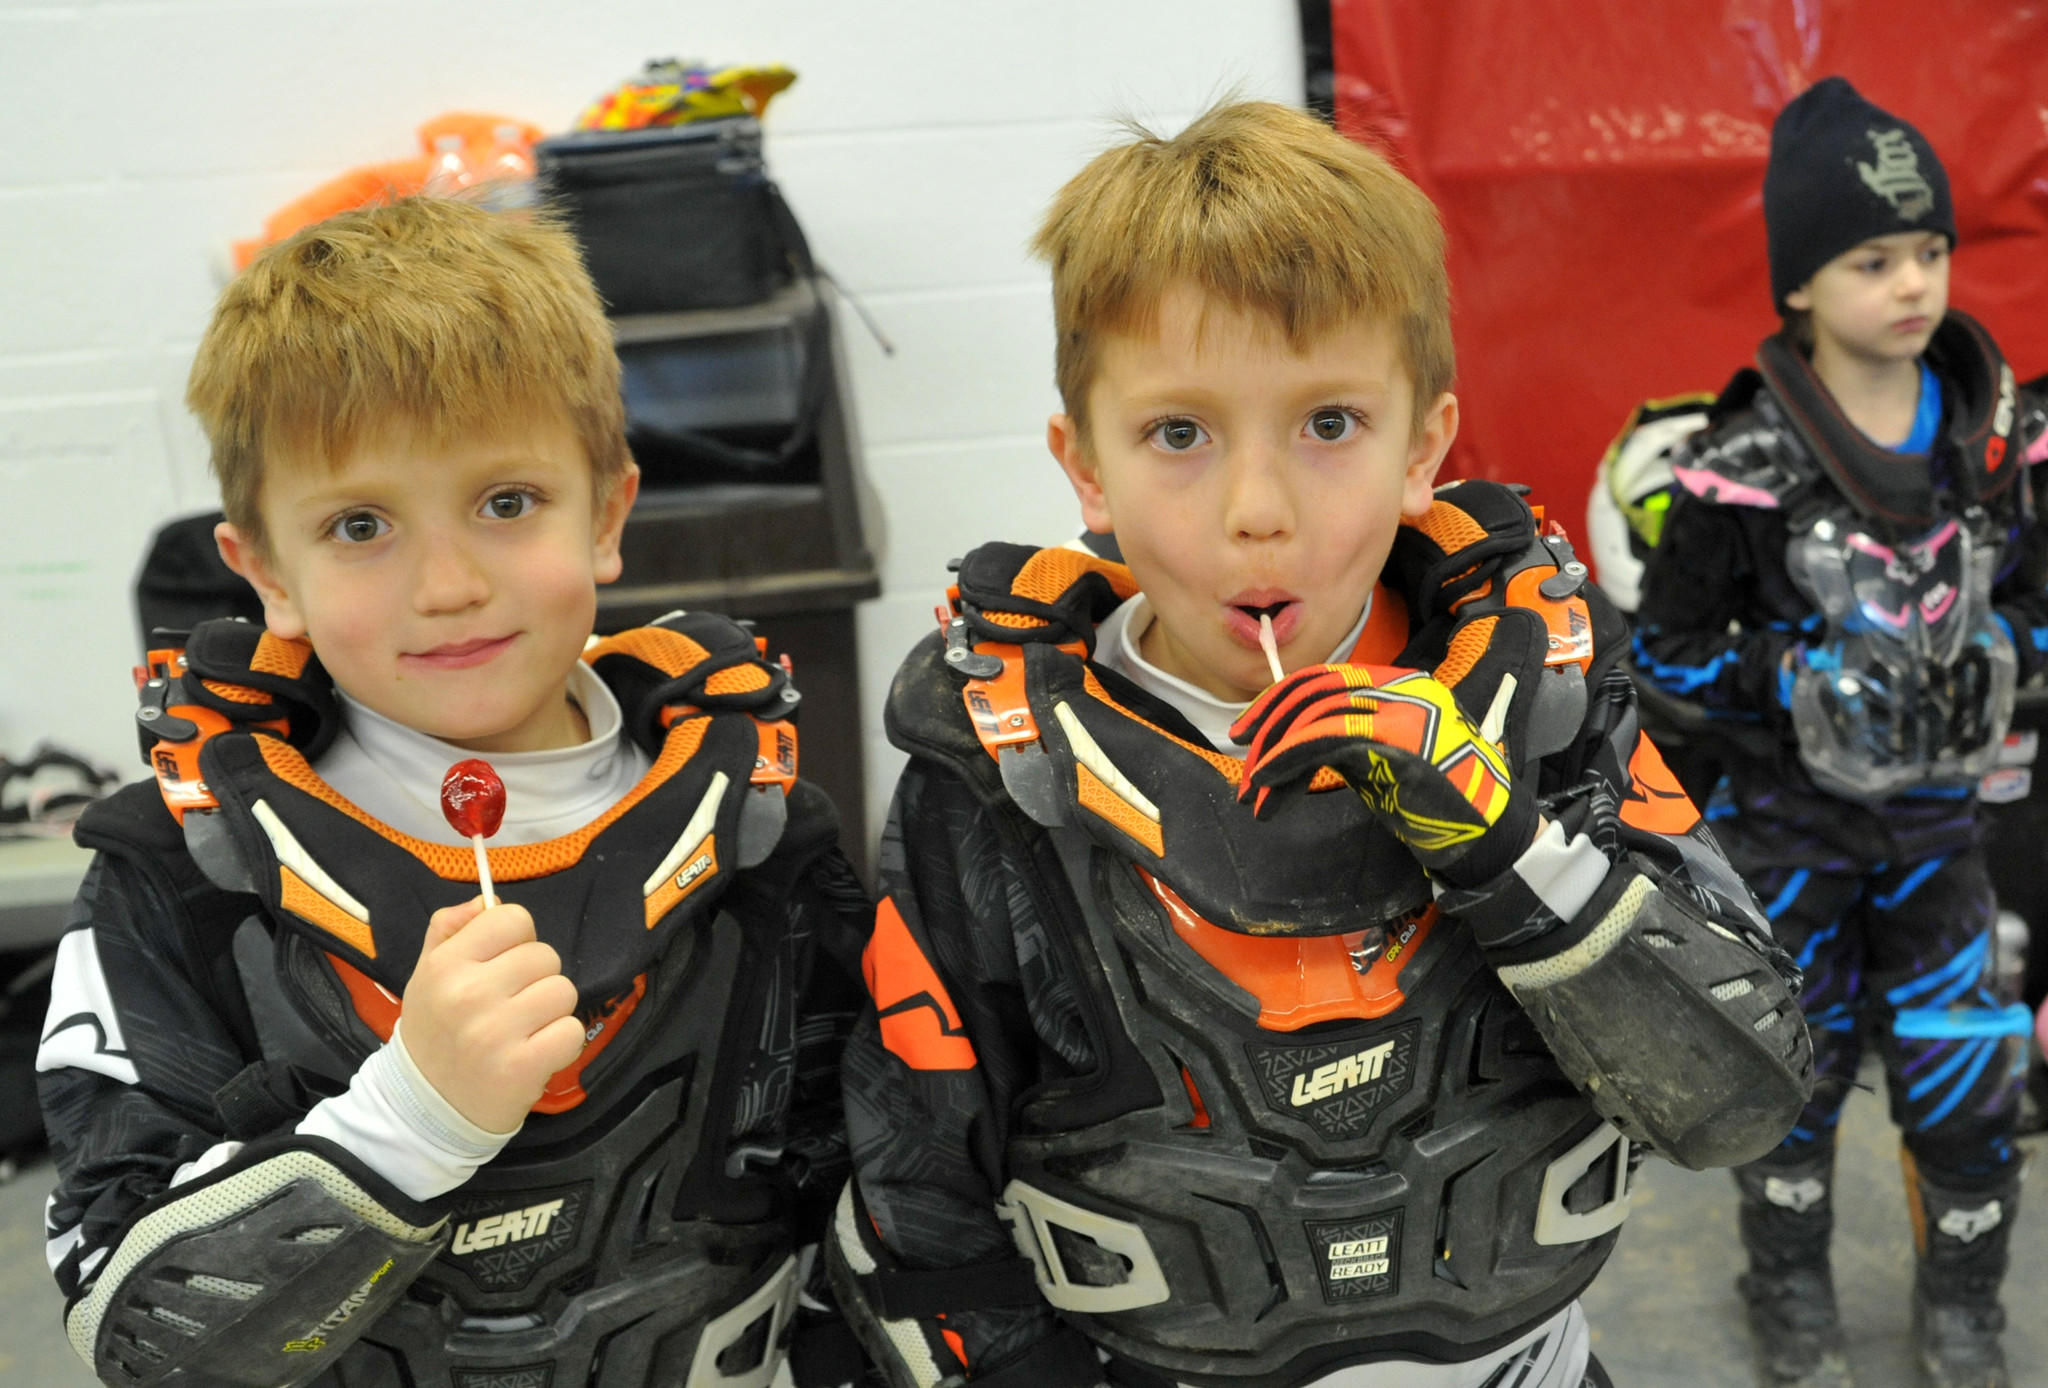 Twins Dominic, left, and Colton Stallings, 6, of Huntingtown, MD, take a lollipop break between races in the Baltimore AMSOIL Arenacross event at the Baltimore Arena.